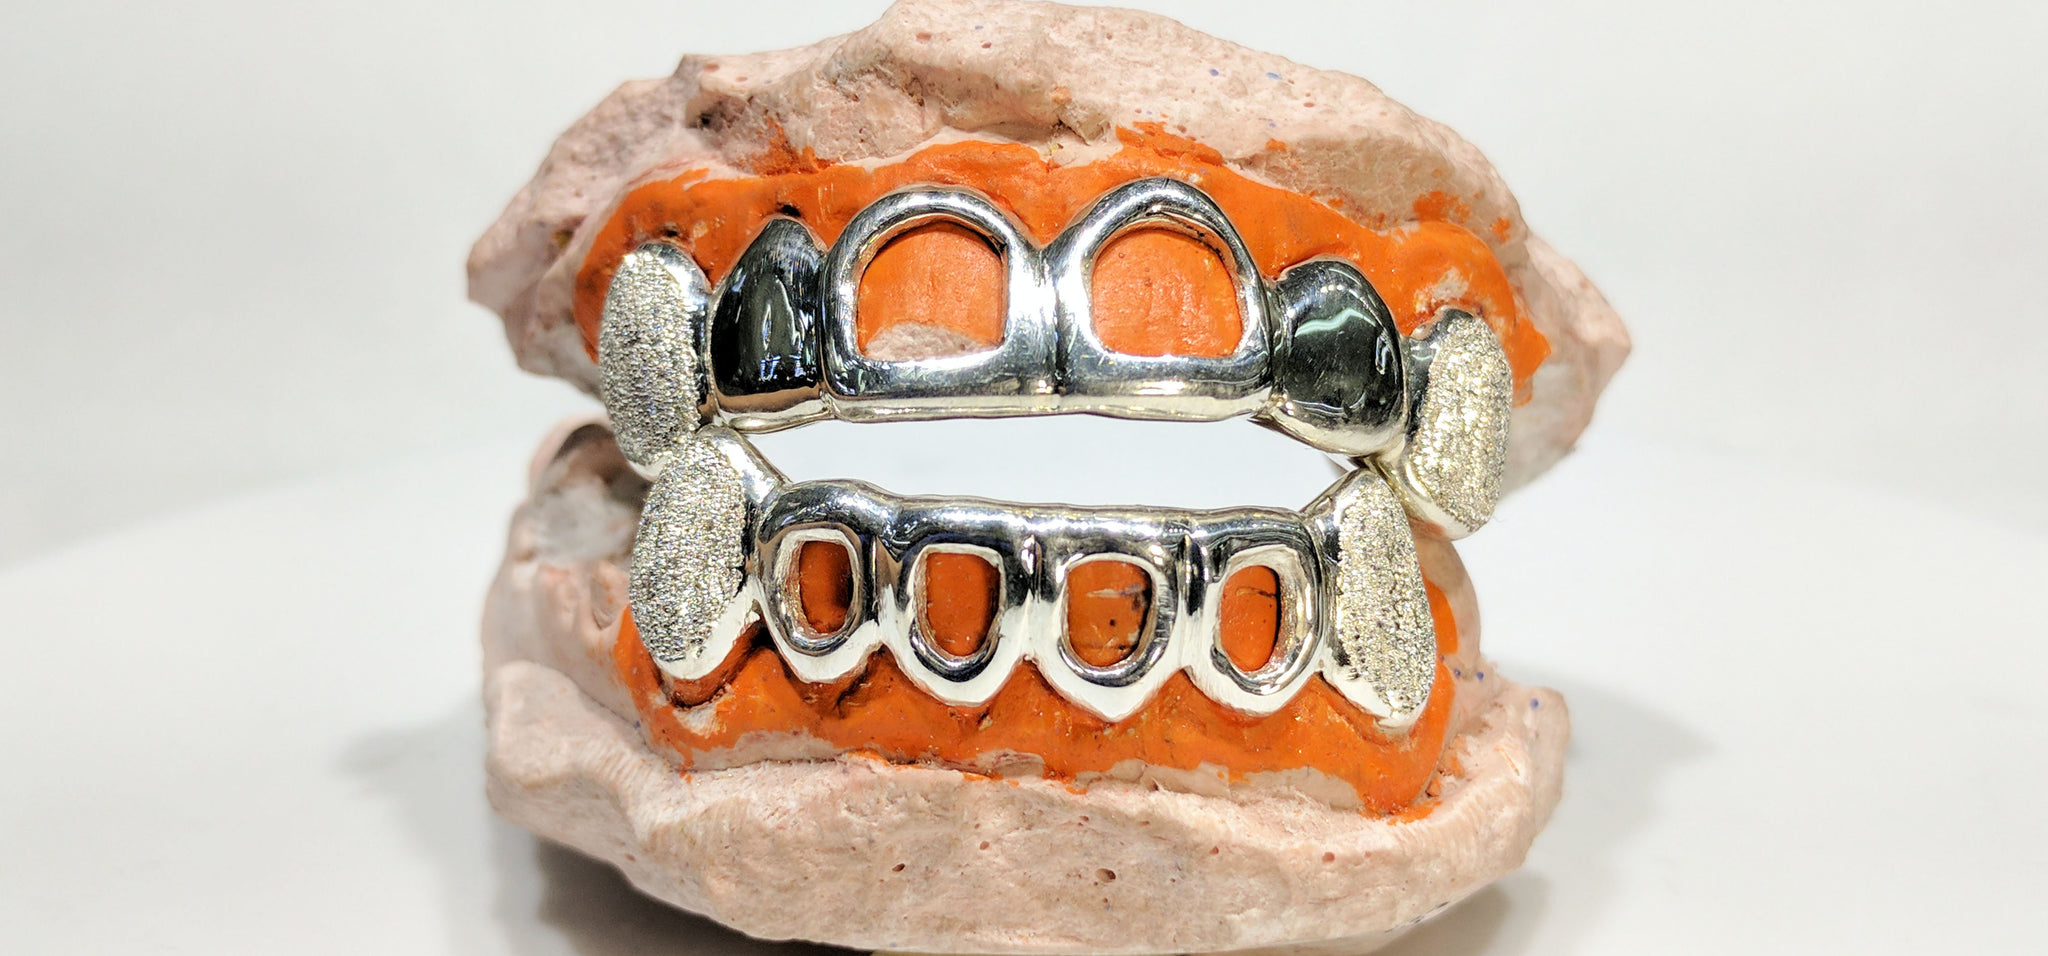 In the center: a custom made sterling silver top and bottom grills with open face and laser cut canines made by Popular Jewelry in New York City for Rujhen